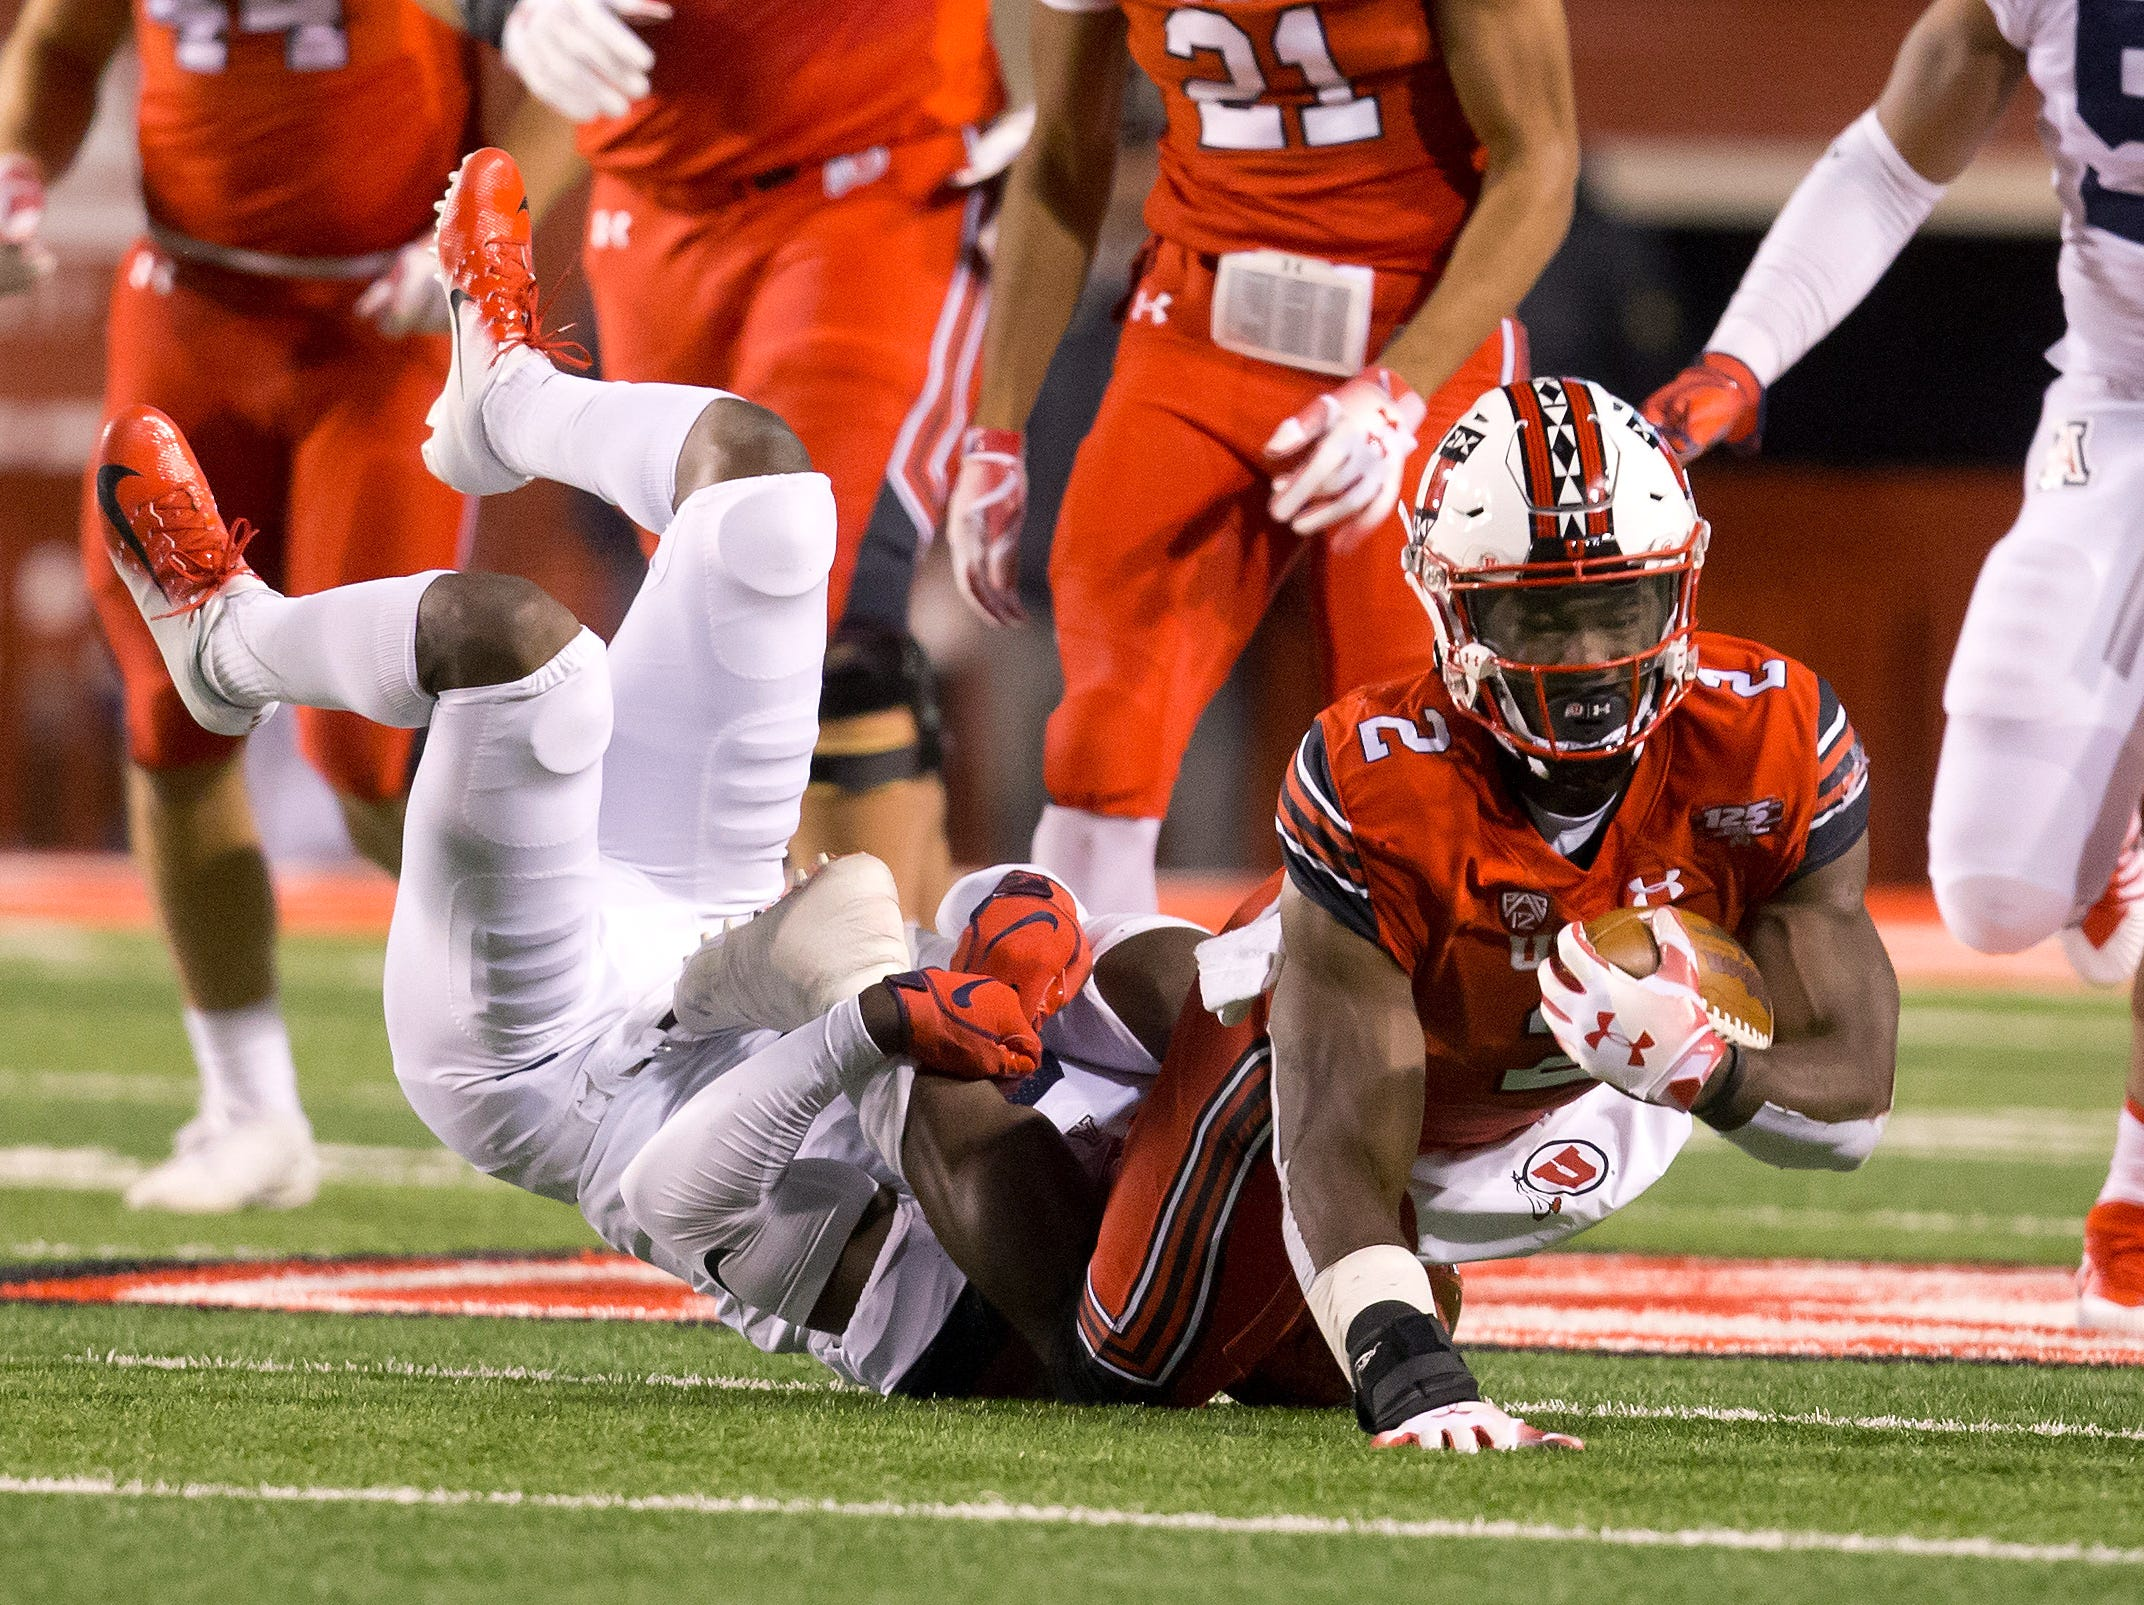 Utah Utes running back Zack Moss (2) is tackled by Arizona Wildcats safety Demetrius Flannigan-Fowles (6) during the first half at Rice-Eccles Stadium.